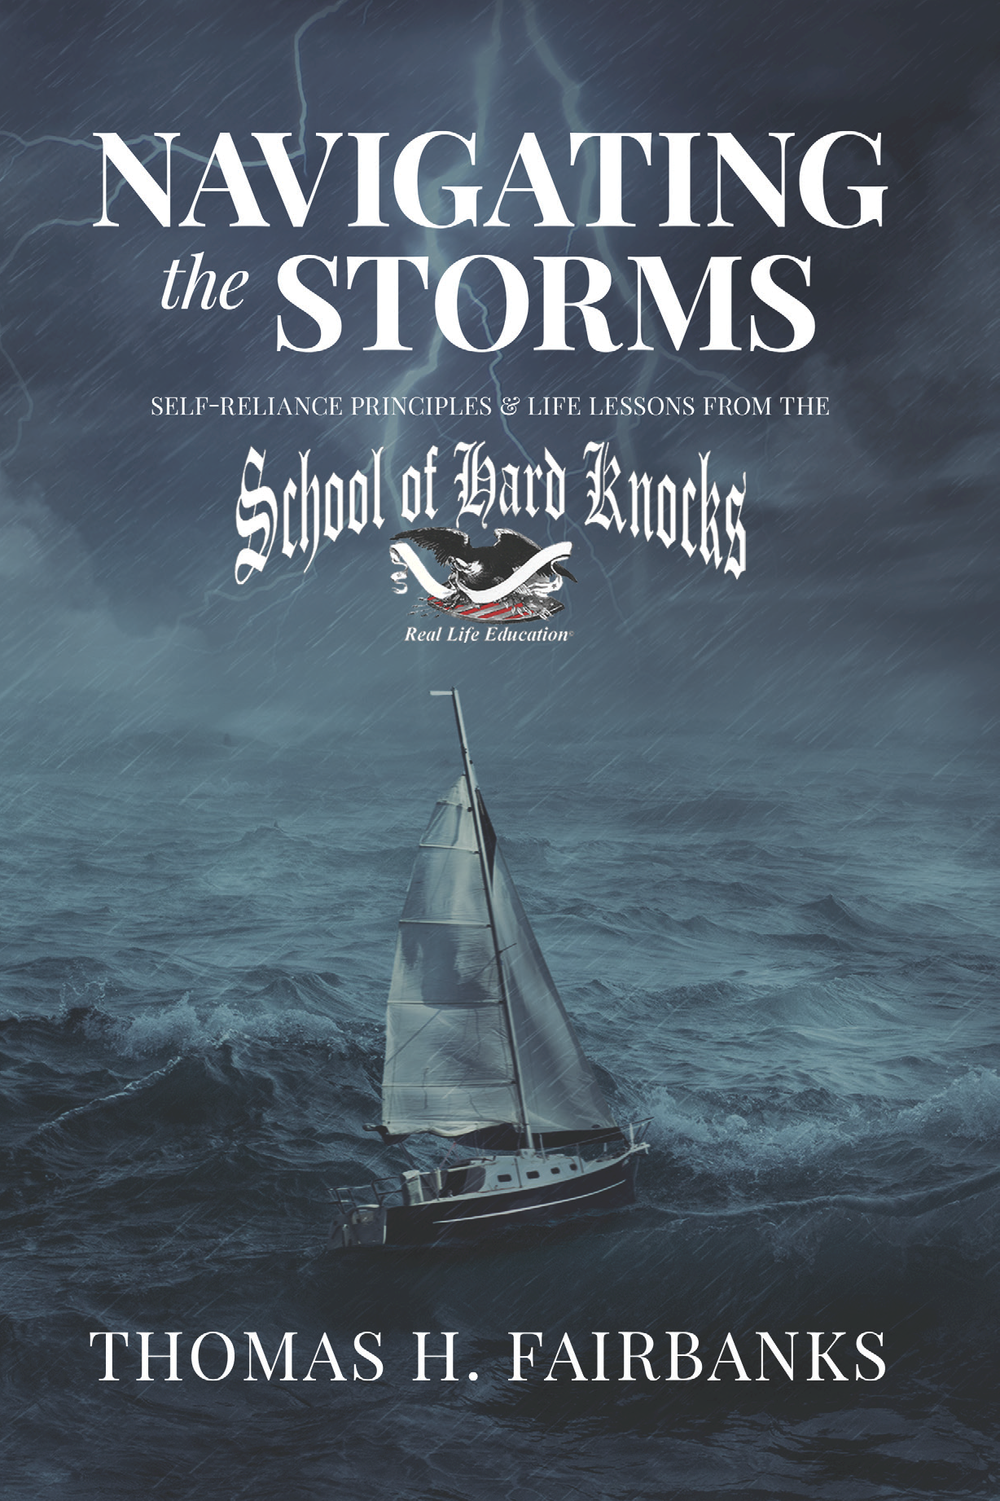 Navigating the Storms Front Cover PROOF.png